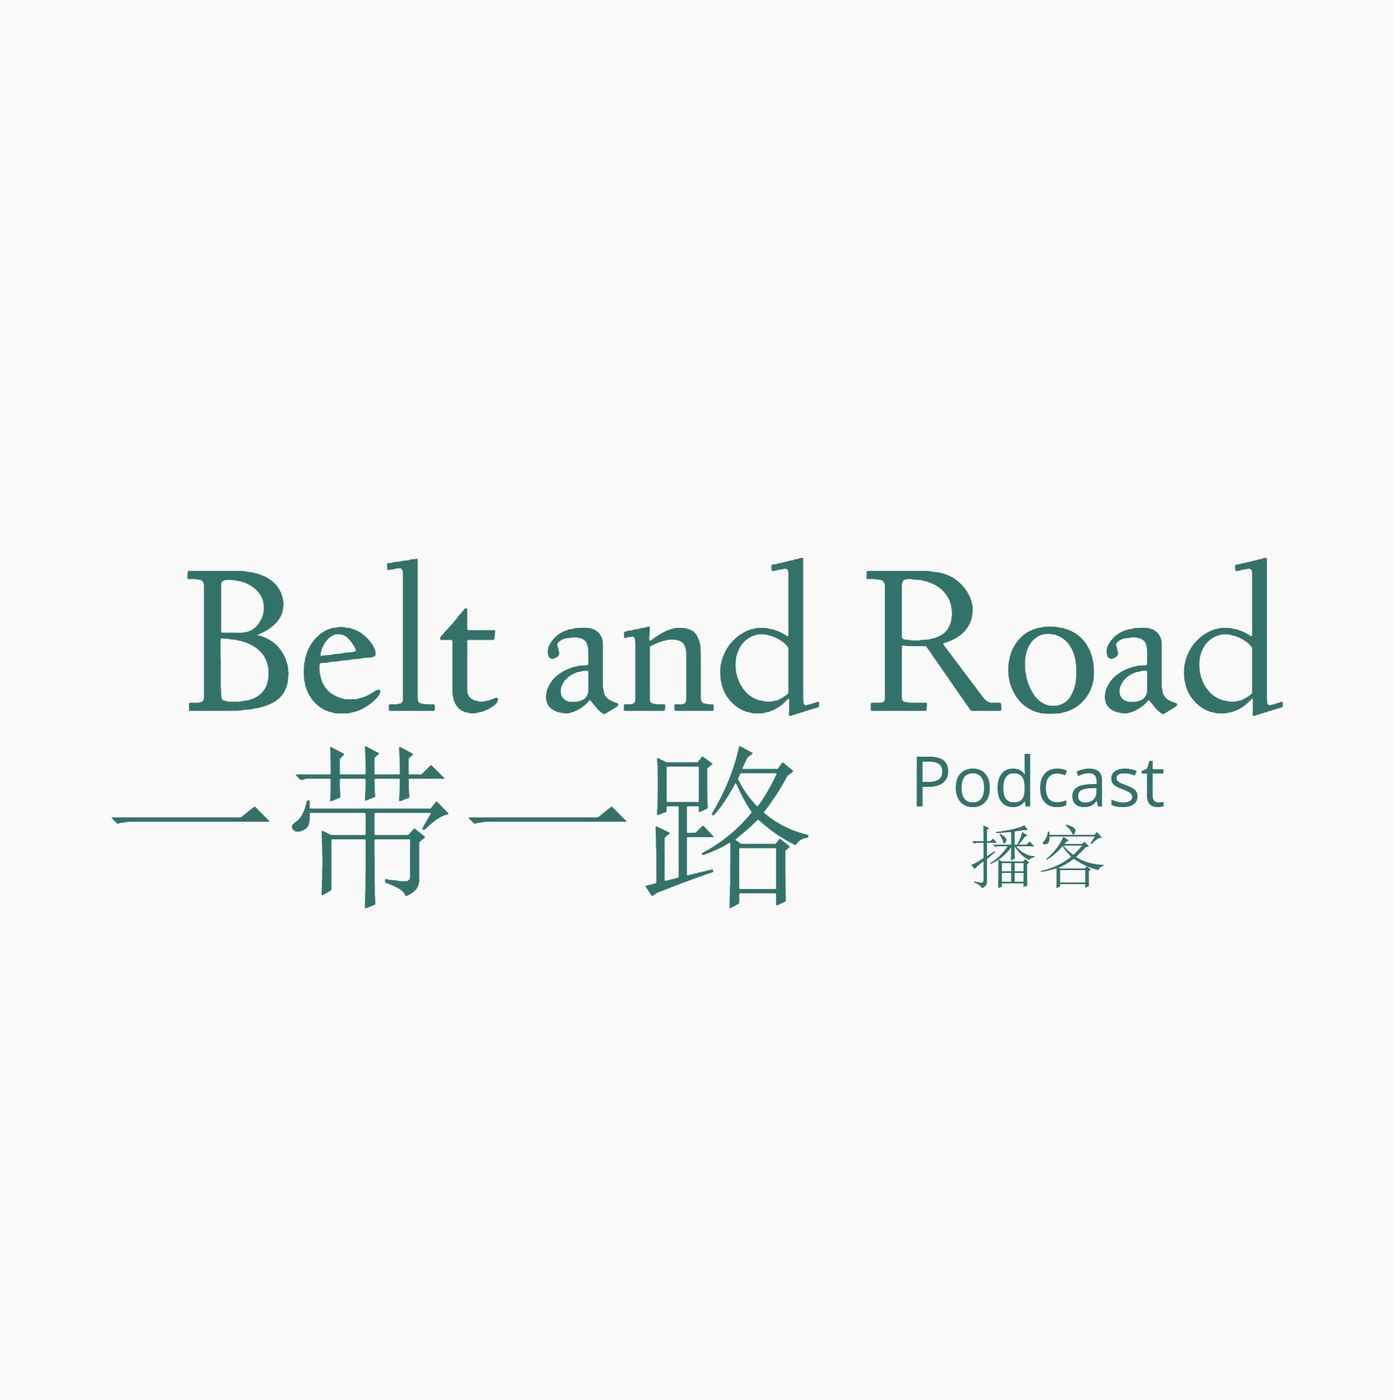 1: Emily Weinstein - Chinese Sports Tourism and the Belt and Road Initiative